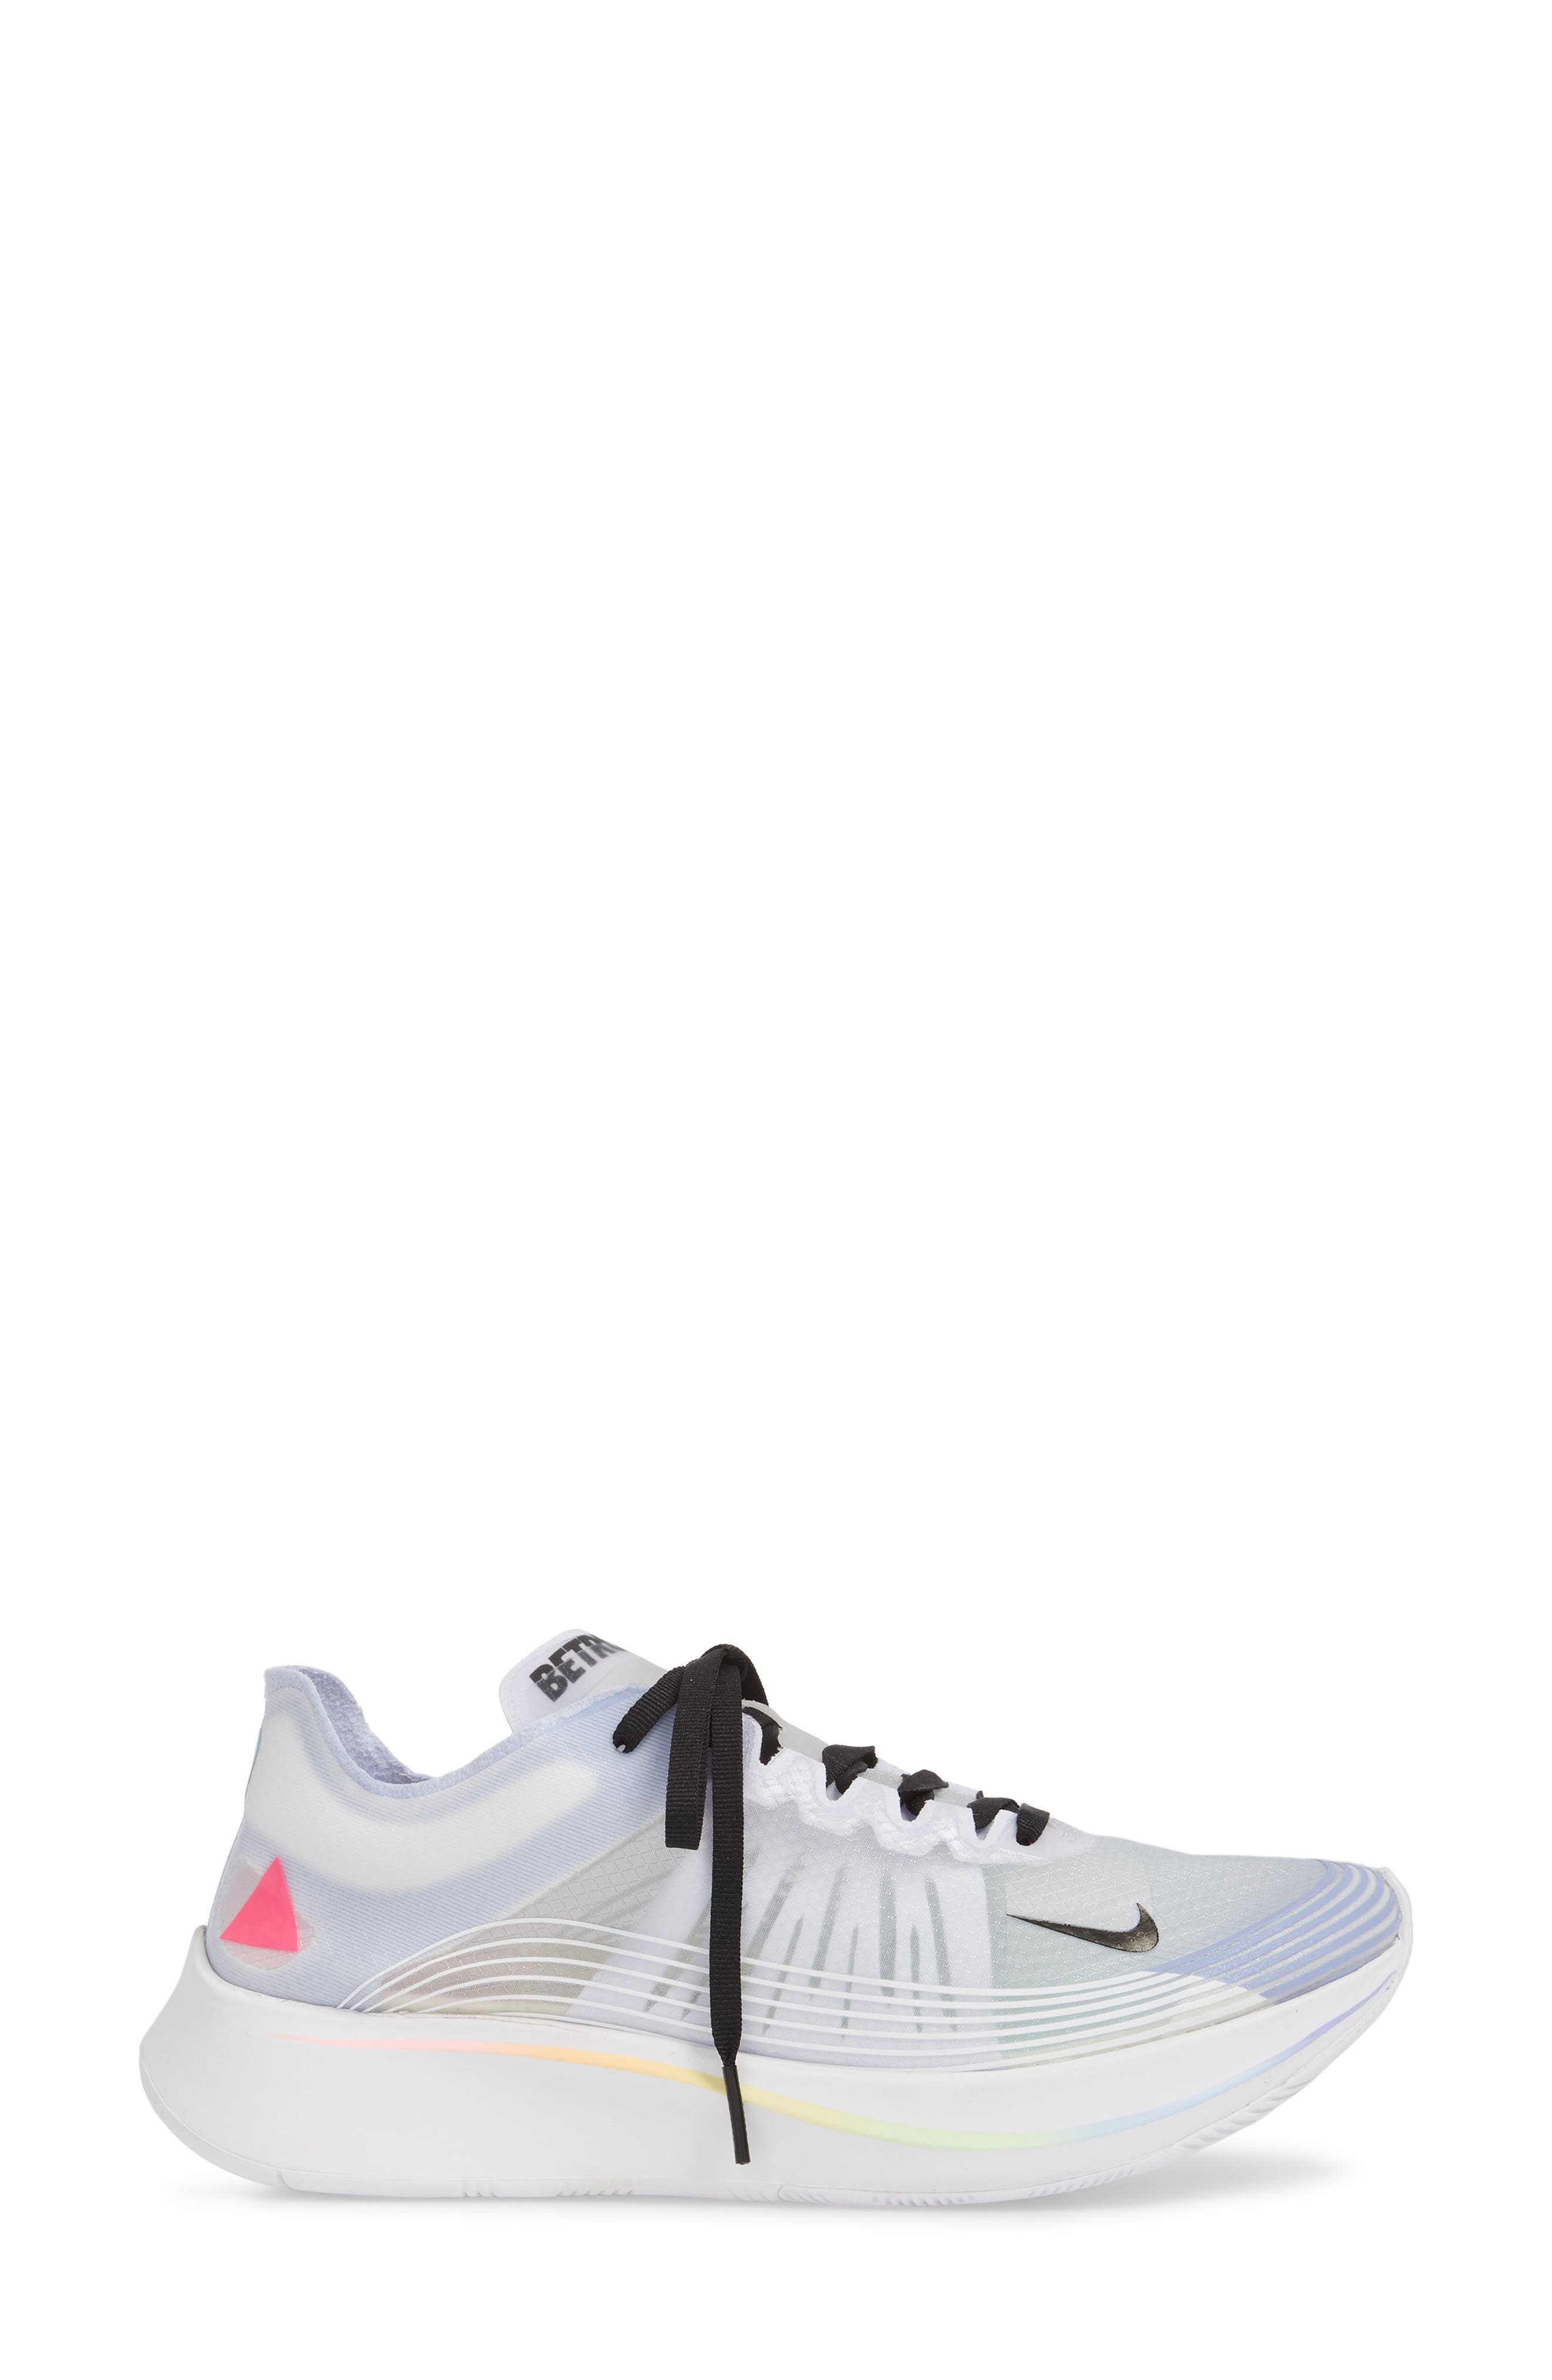 Nordstrom x Nike Zoom Fly BETRUE Running Shoe,                             Alternate thumbnail 3, color,                             105